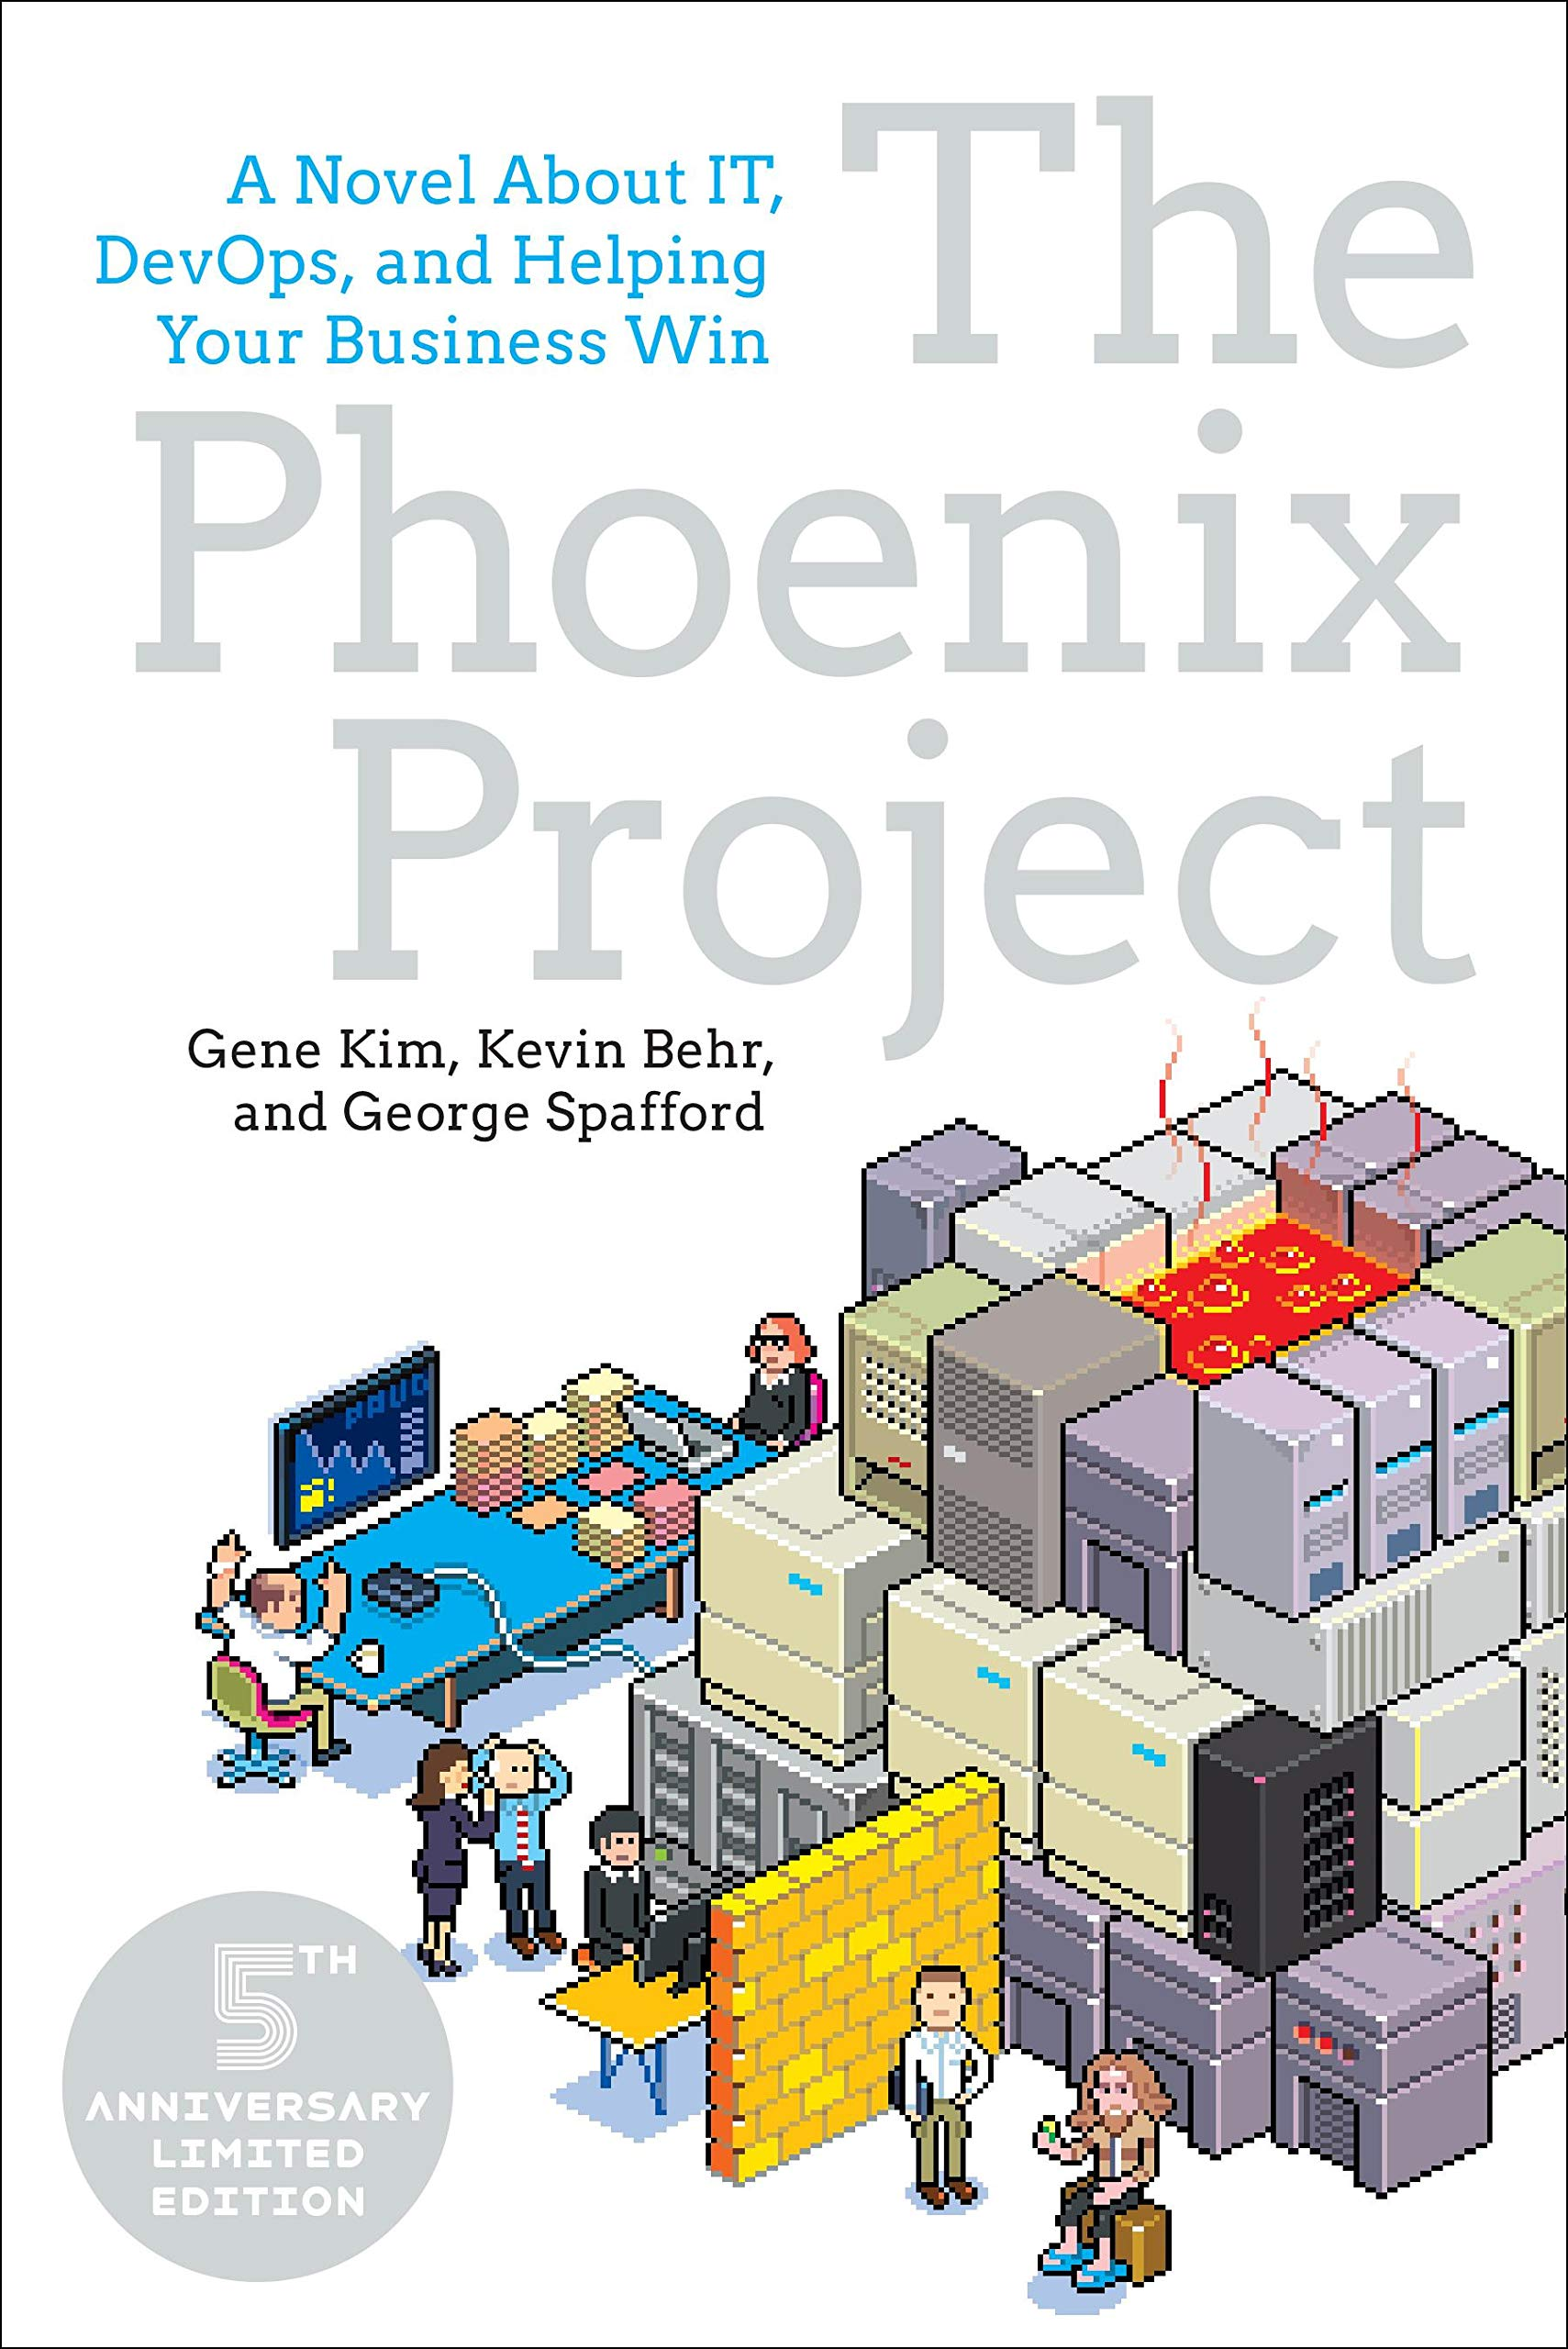 Image for The Phoenix Project (A Novel About IT, DevOps, and Helping Your Business Win)